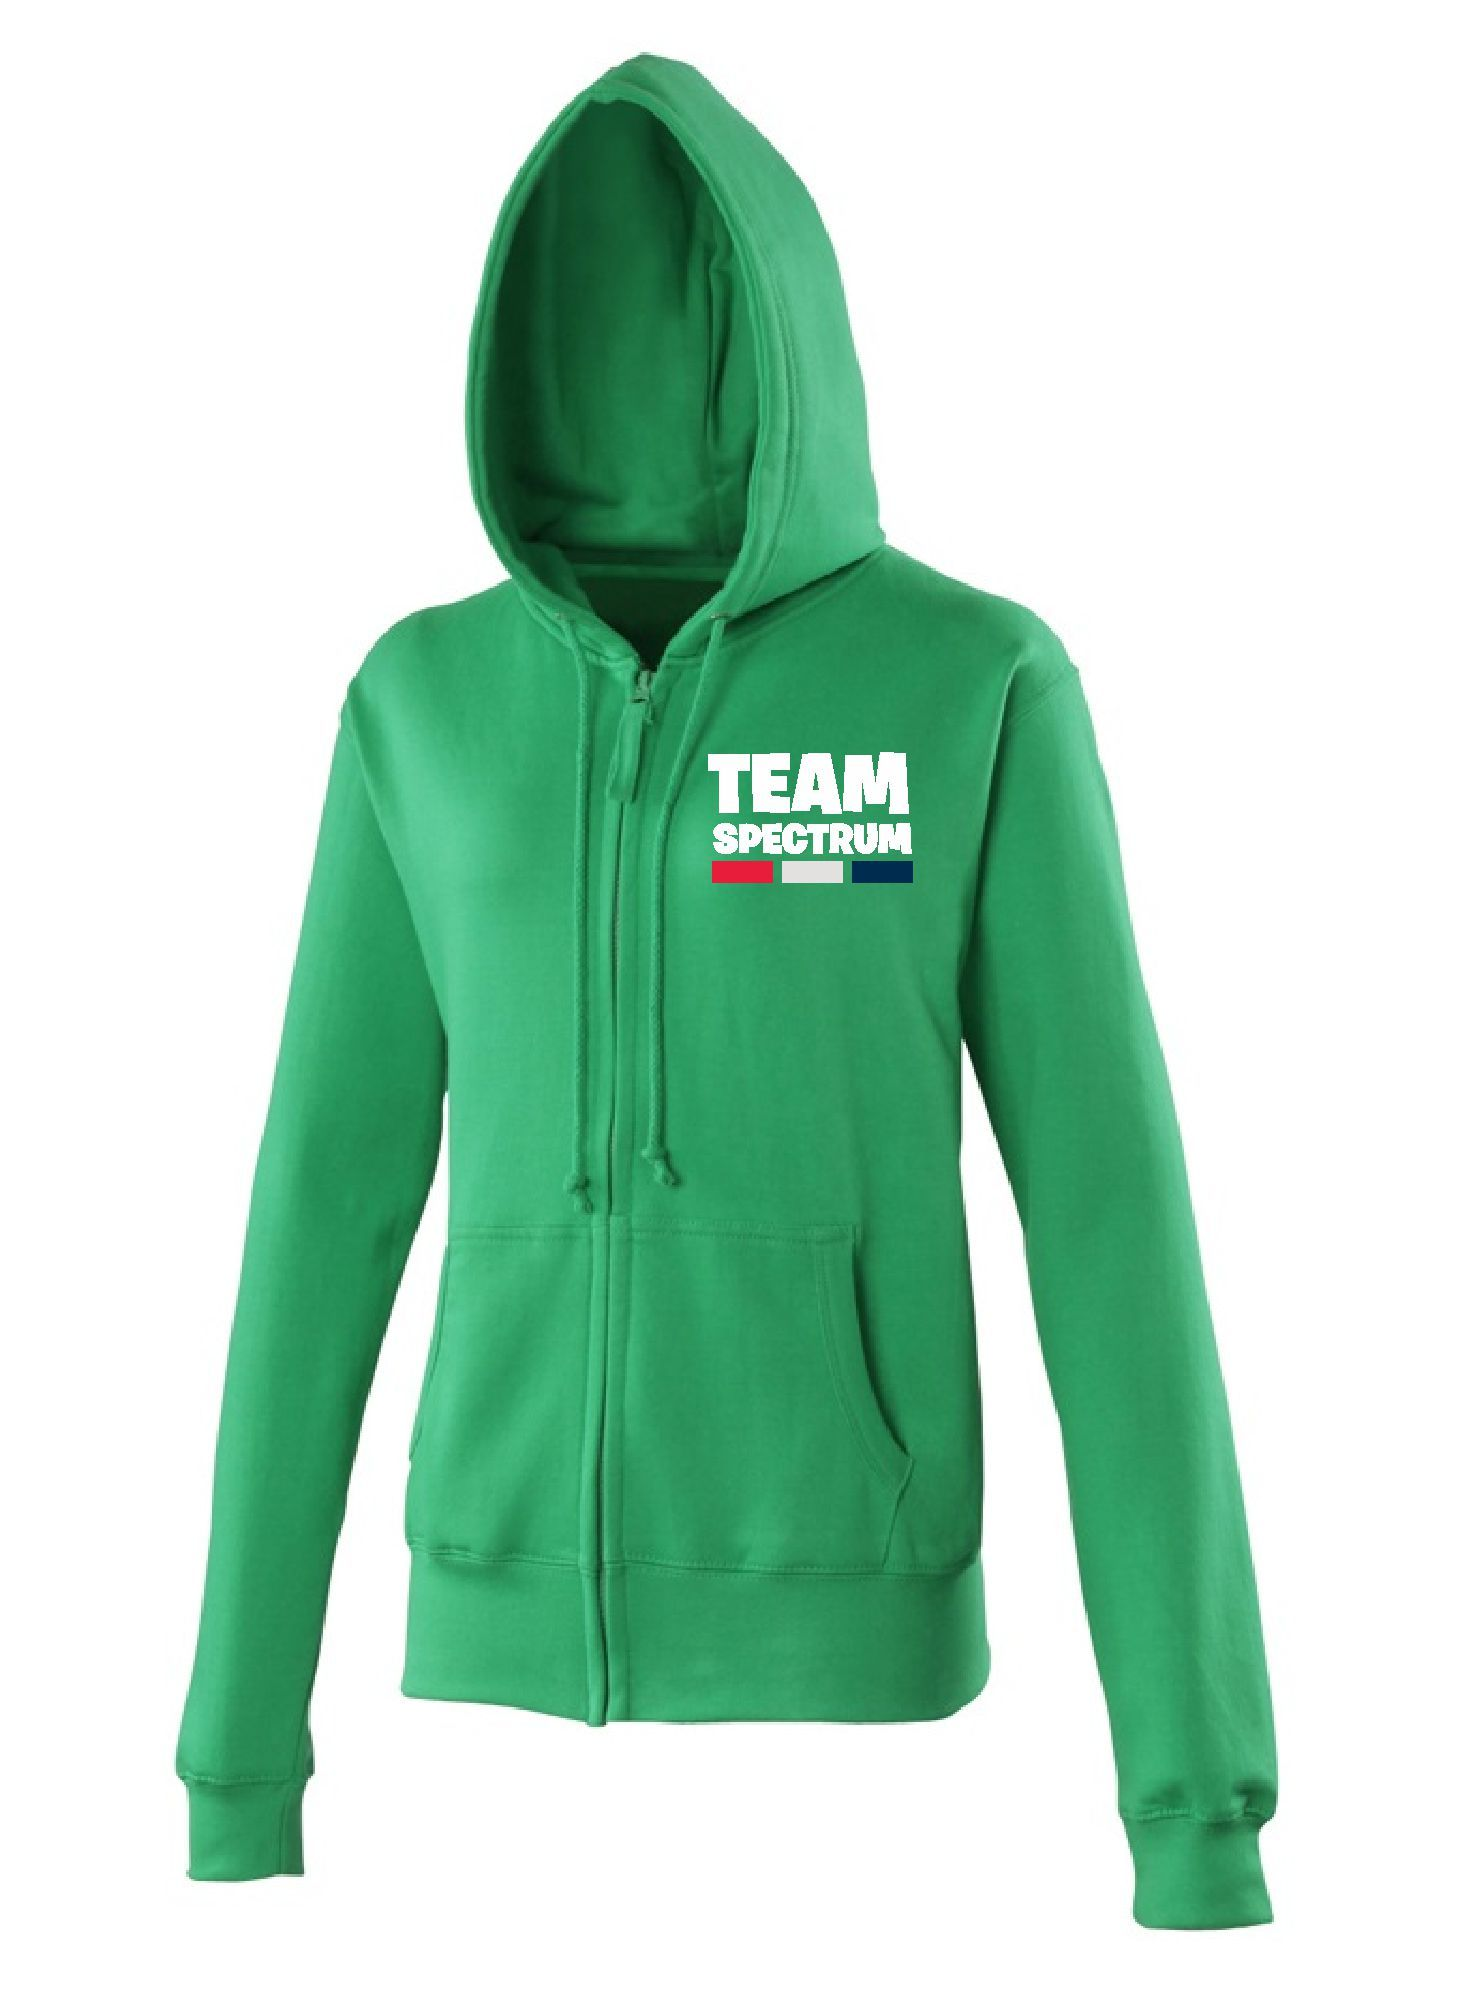 Team Spectrum - Zip Hoodie (Ladies)